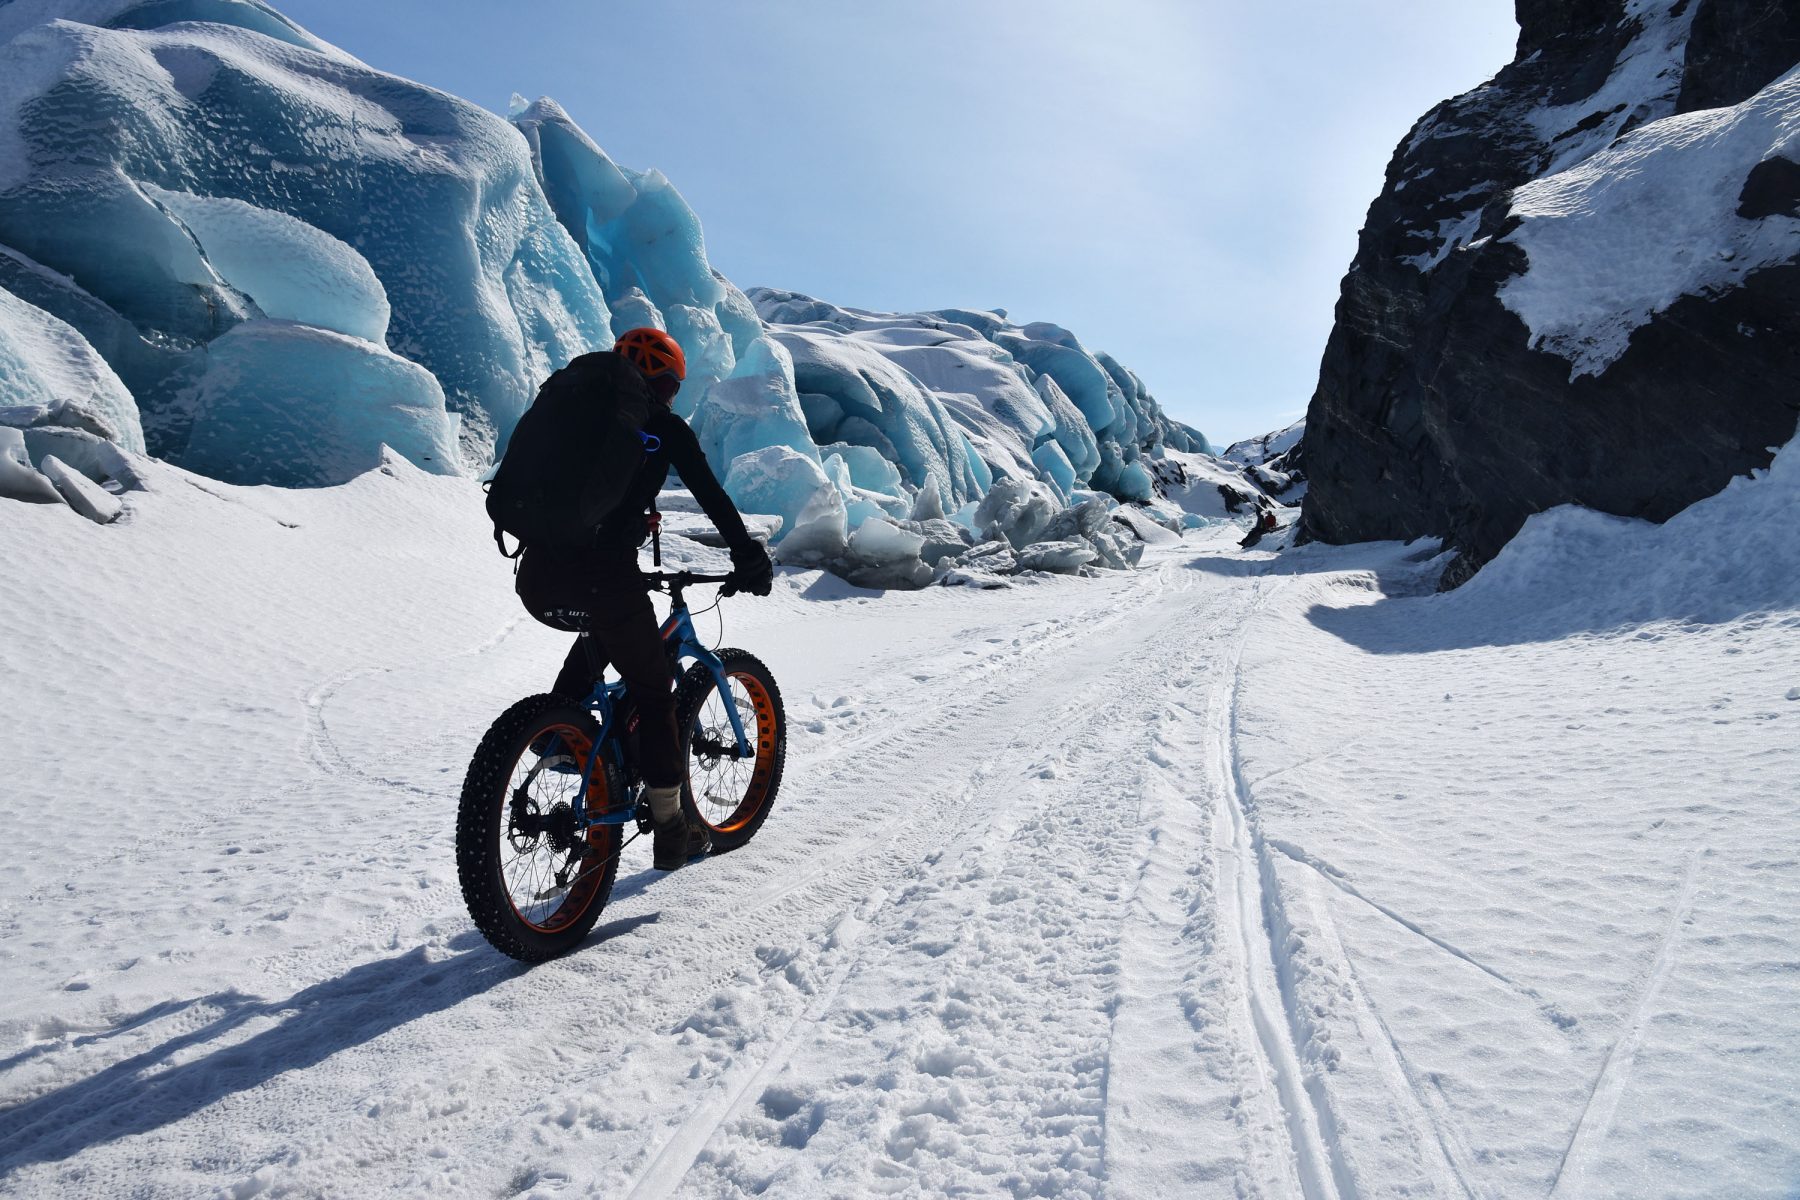 Fatbiking into the Knik Glacier Gorge